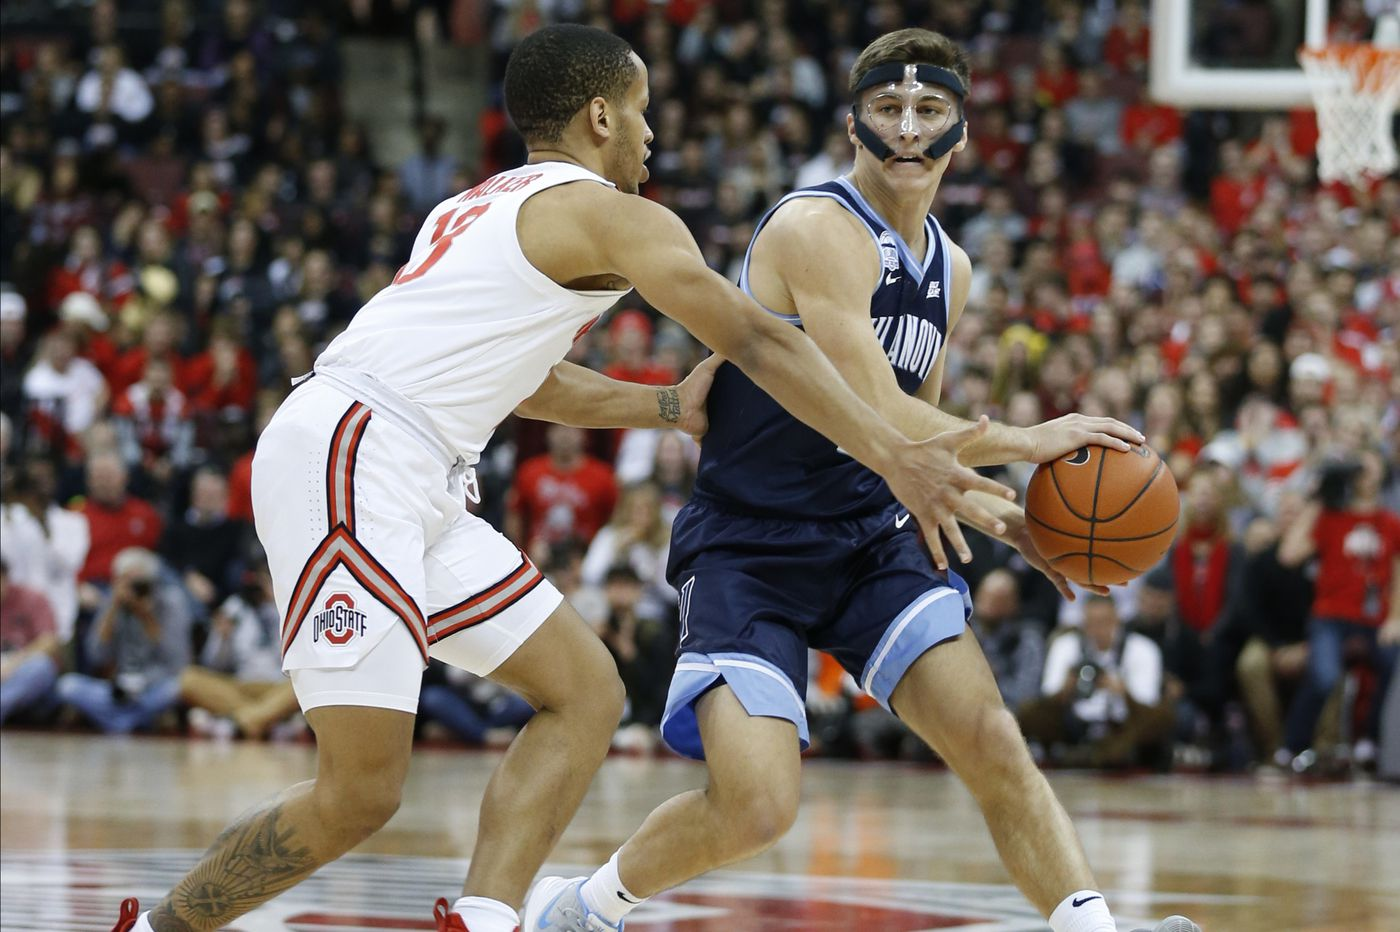 No. 16 Ohio State 76, No. 10 Villanova 51: Stats, highlights and reaction from Wildcats' loss